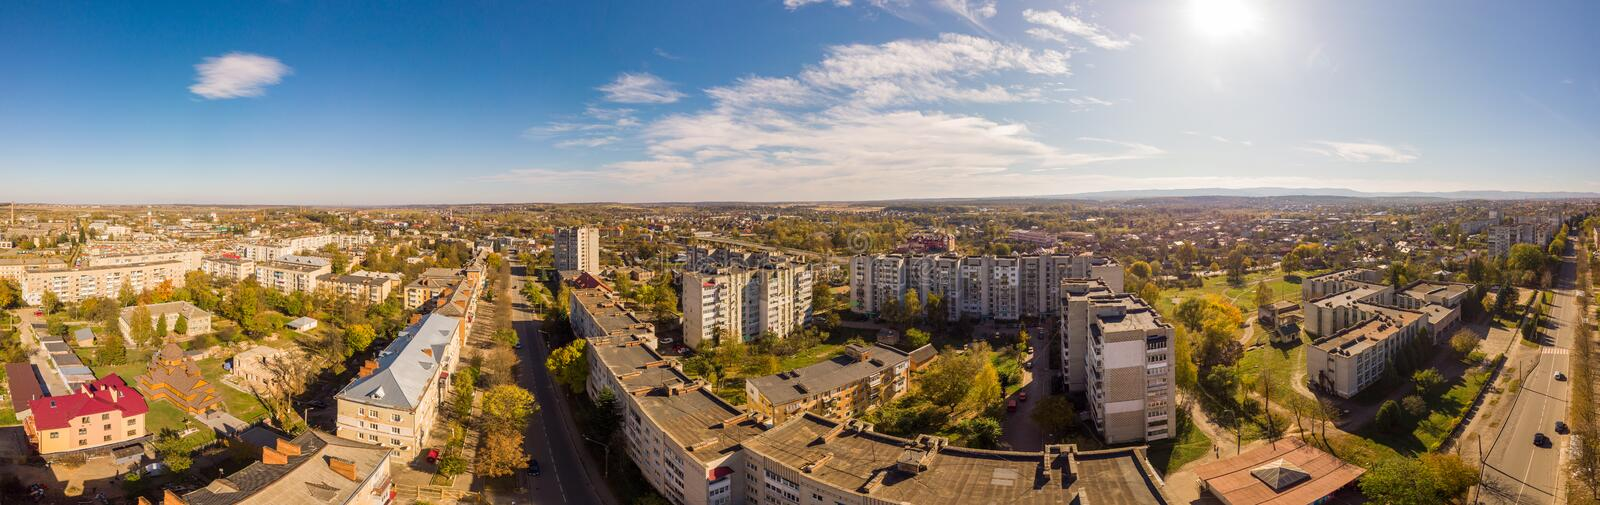 180 degrees landscape of urban area. Aerial drone view cityscape. Older European town Drohobych, Ukraine royalty free stock photo